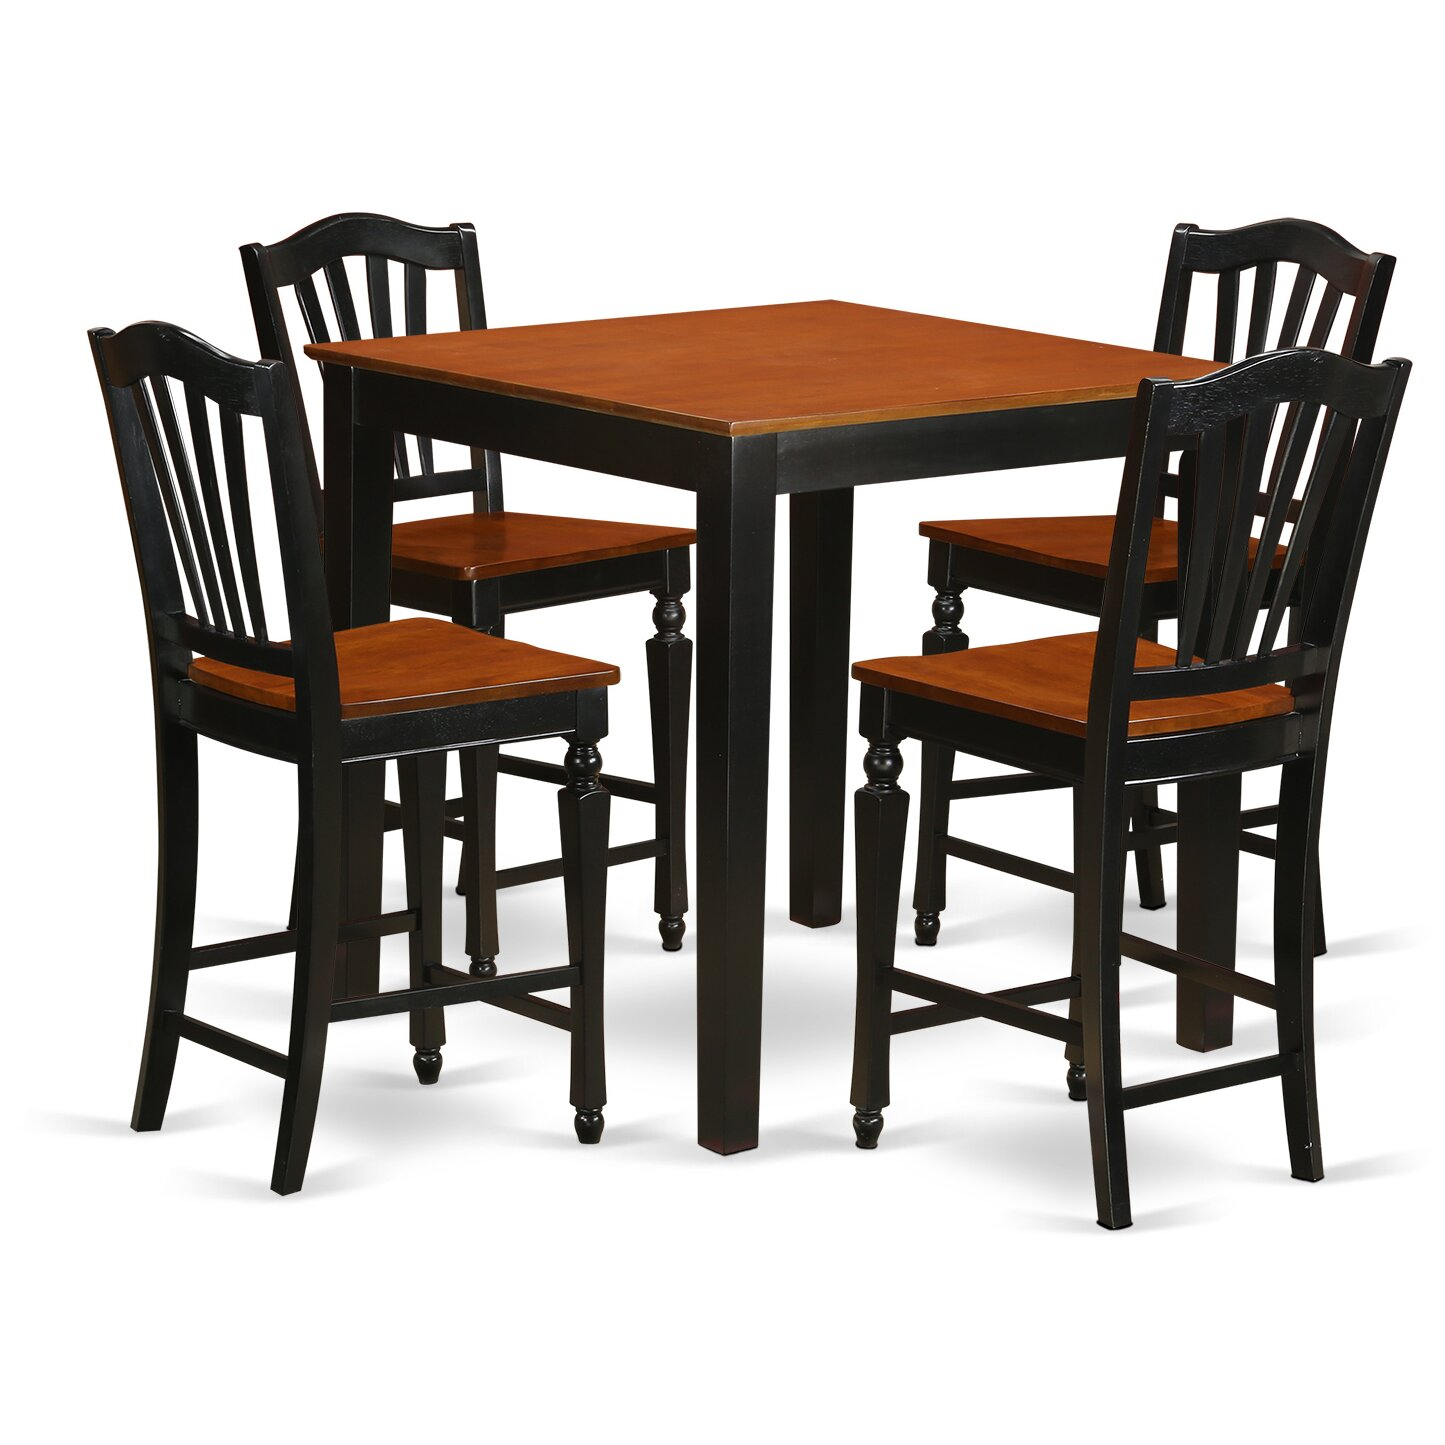 East west 5 piece counter height pub table set wayfair for High kitchen table sets